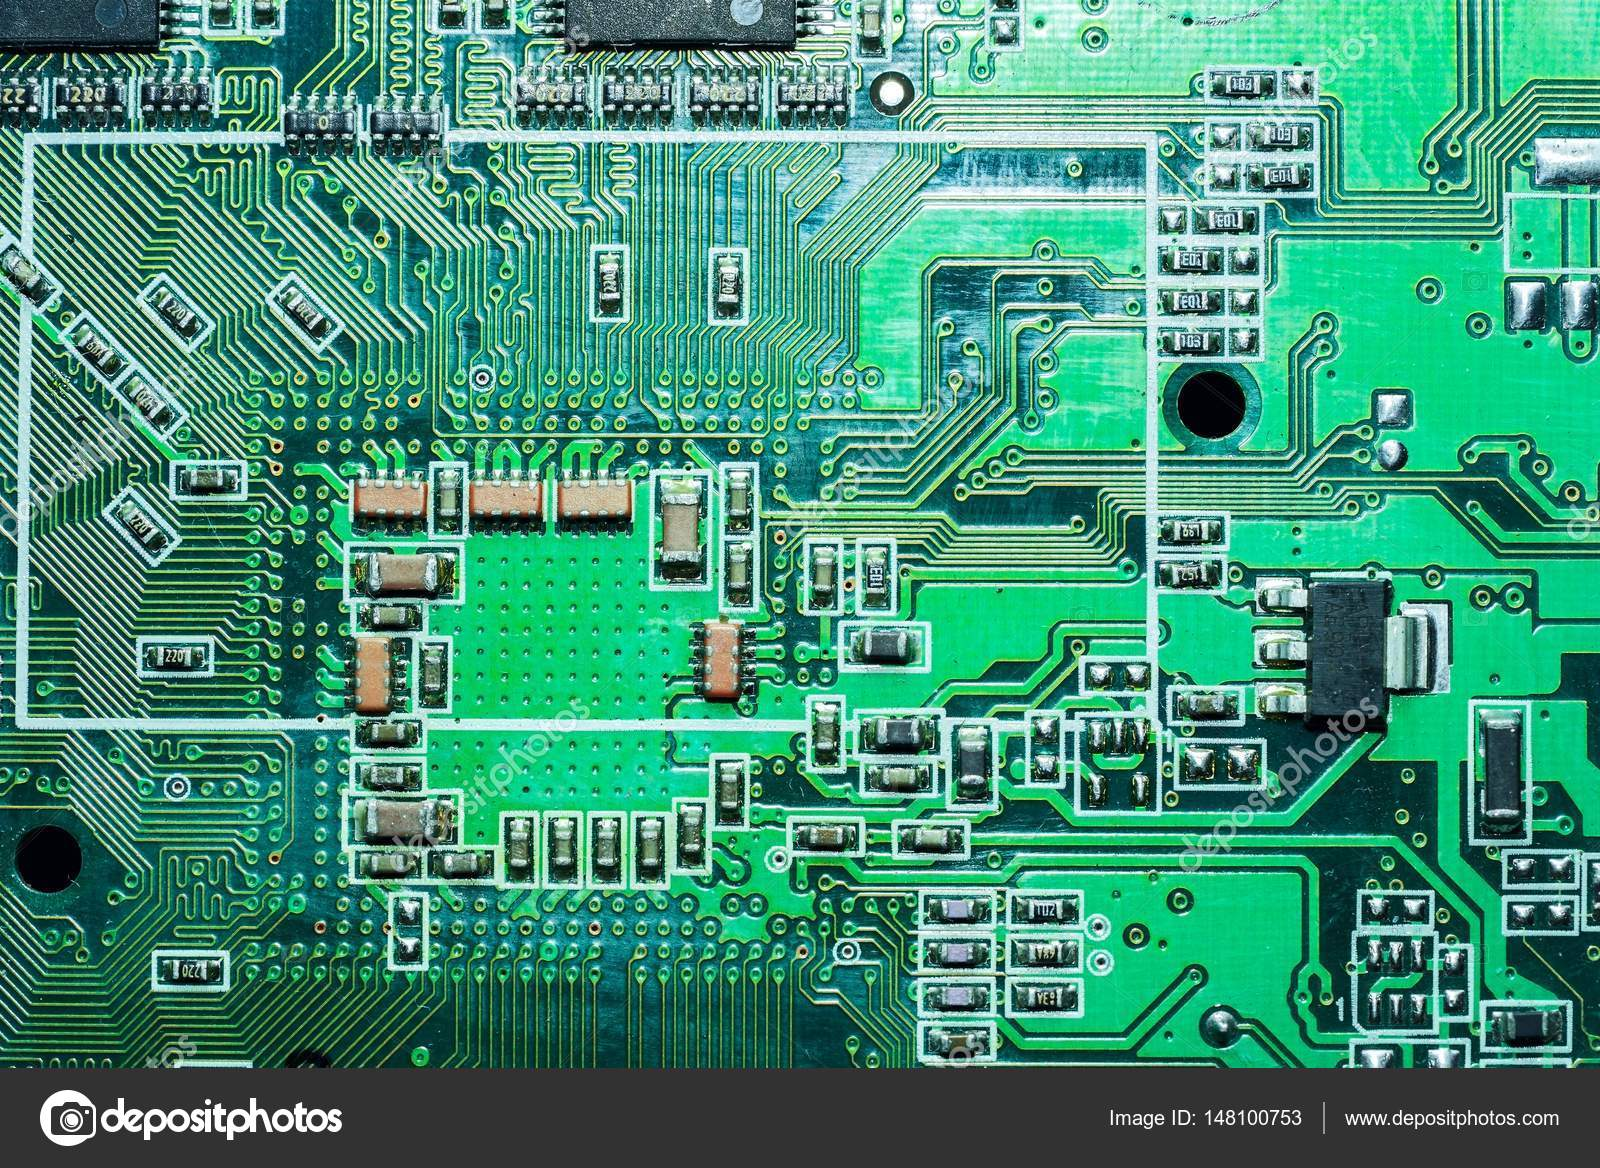 Motherboard Digital Chip Circuit Board Electronic Computer Hardware Technology Photo By Elf 11